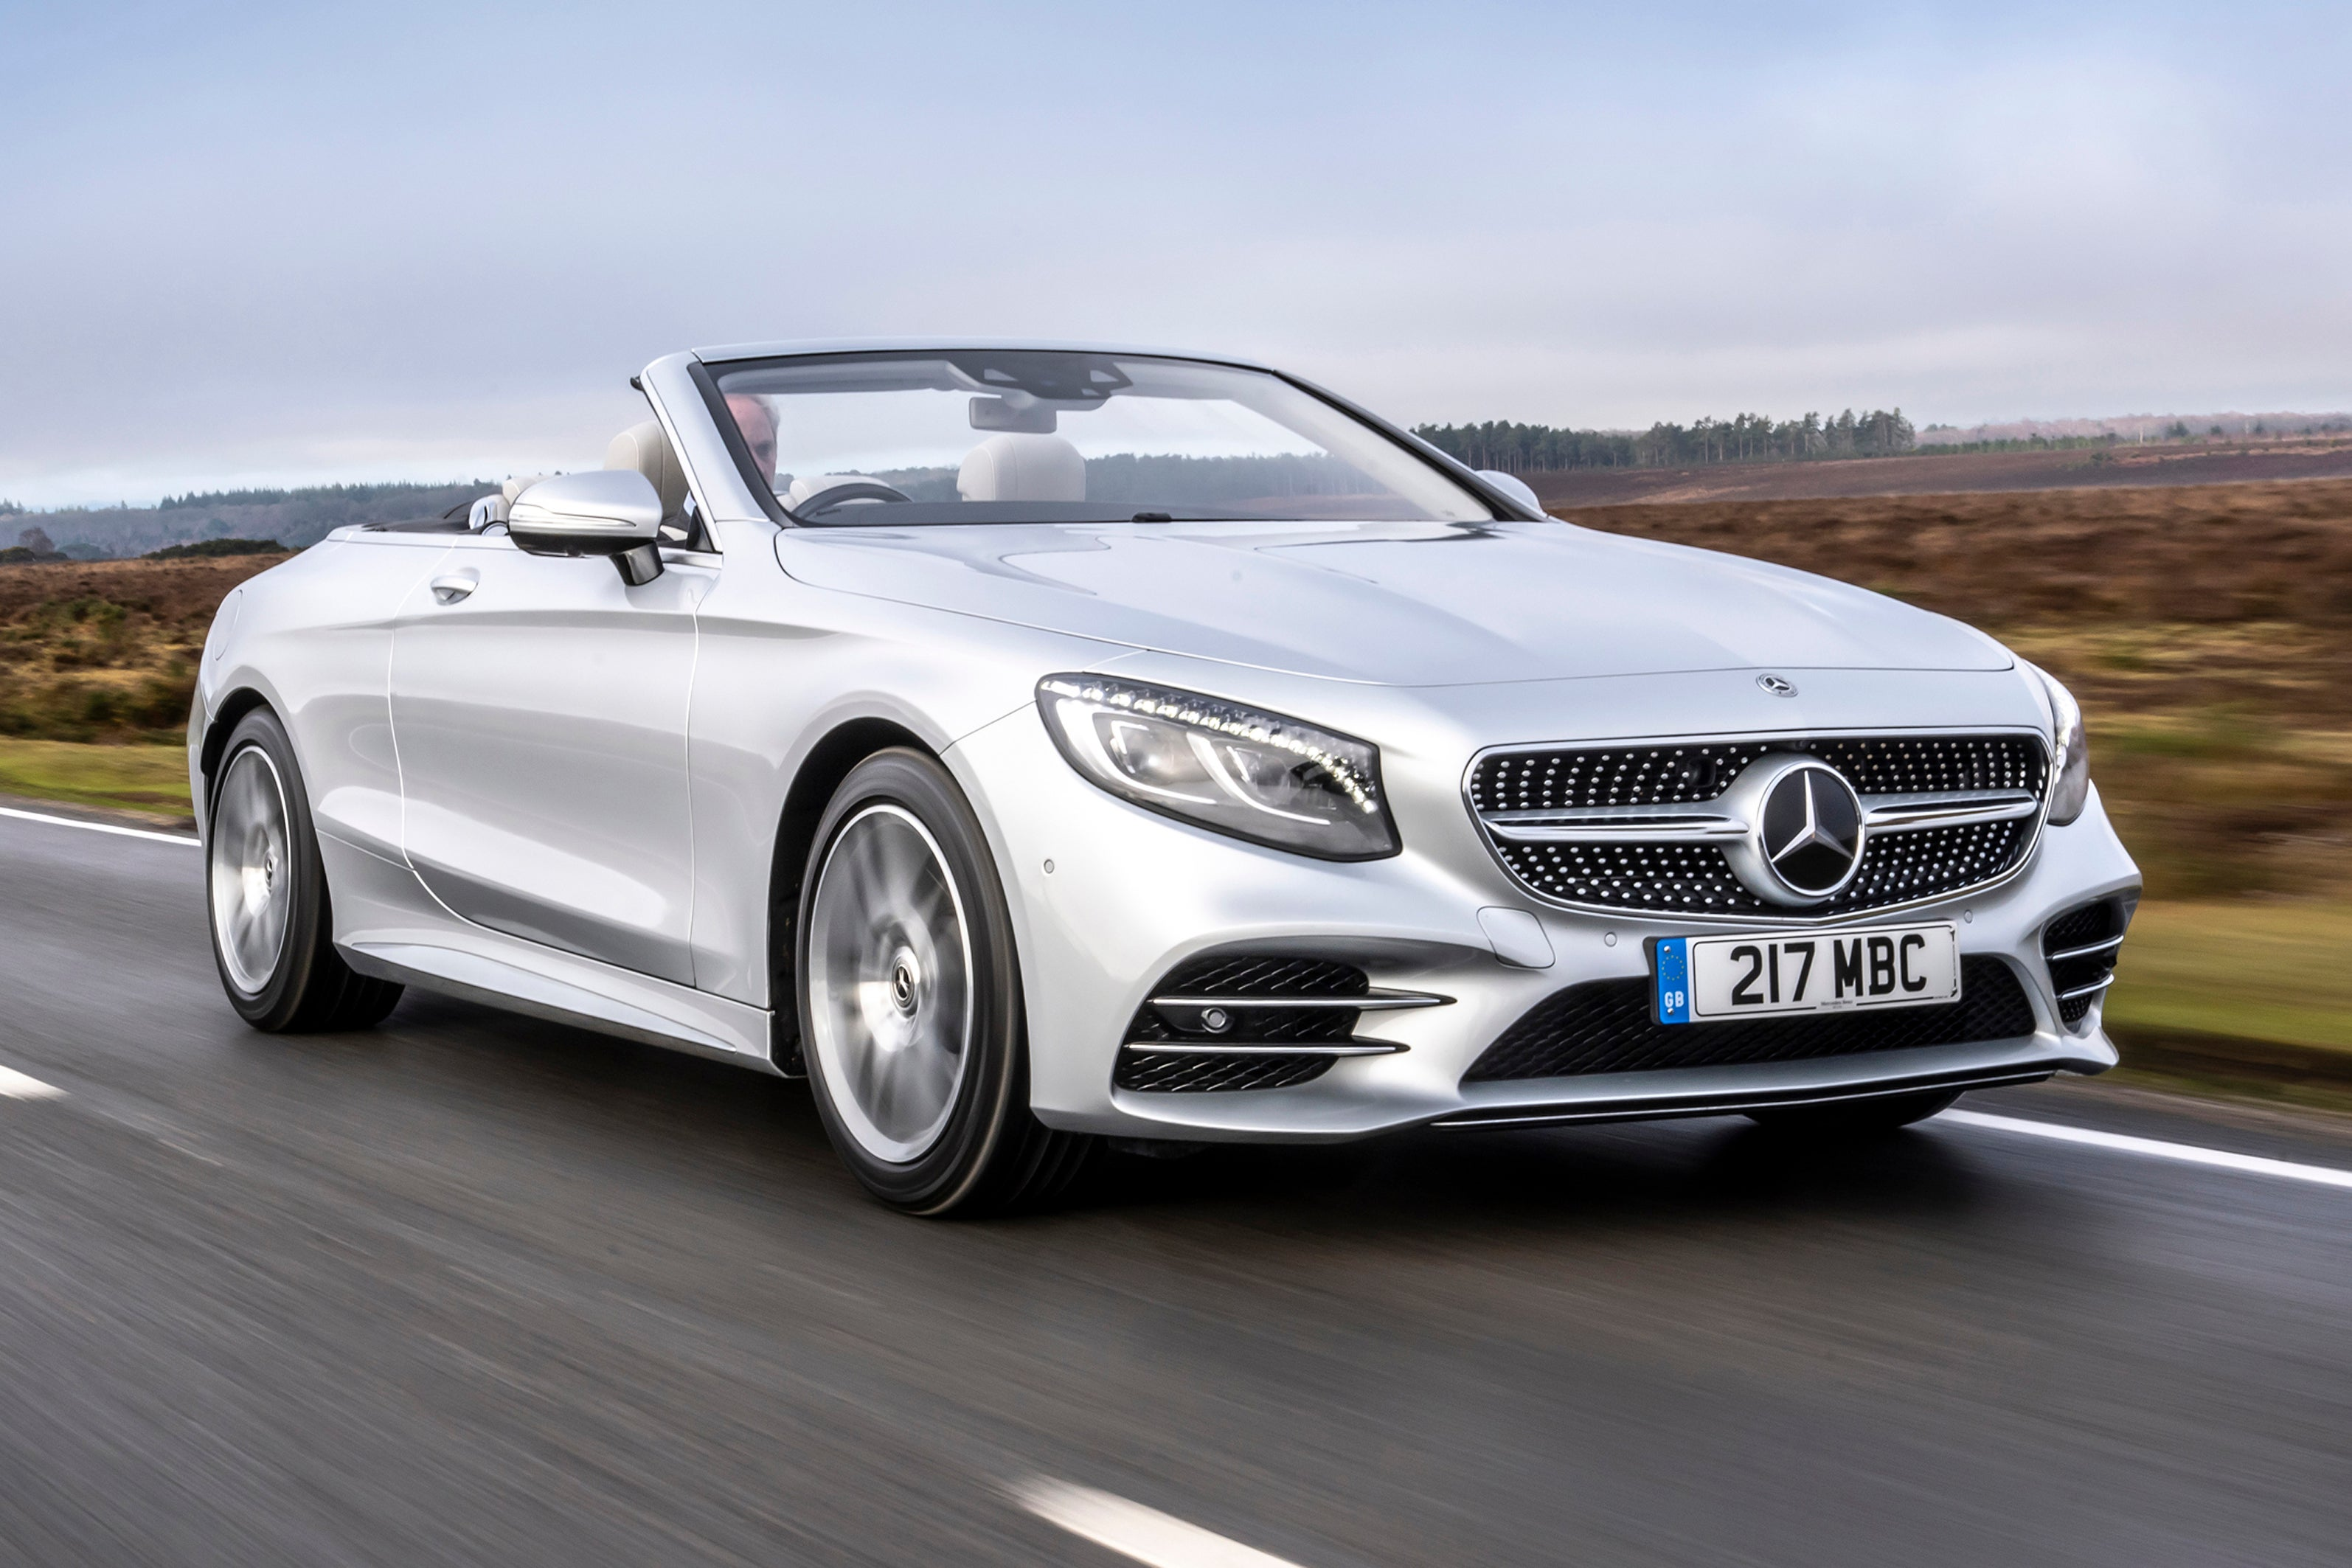 Mercedes S-Class Cabriolet frontright exterior